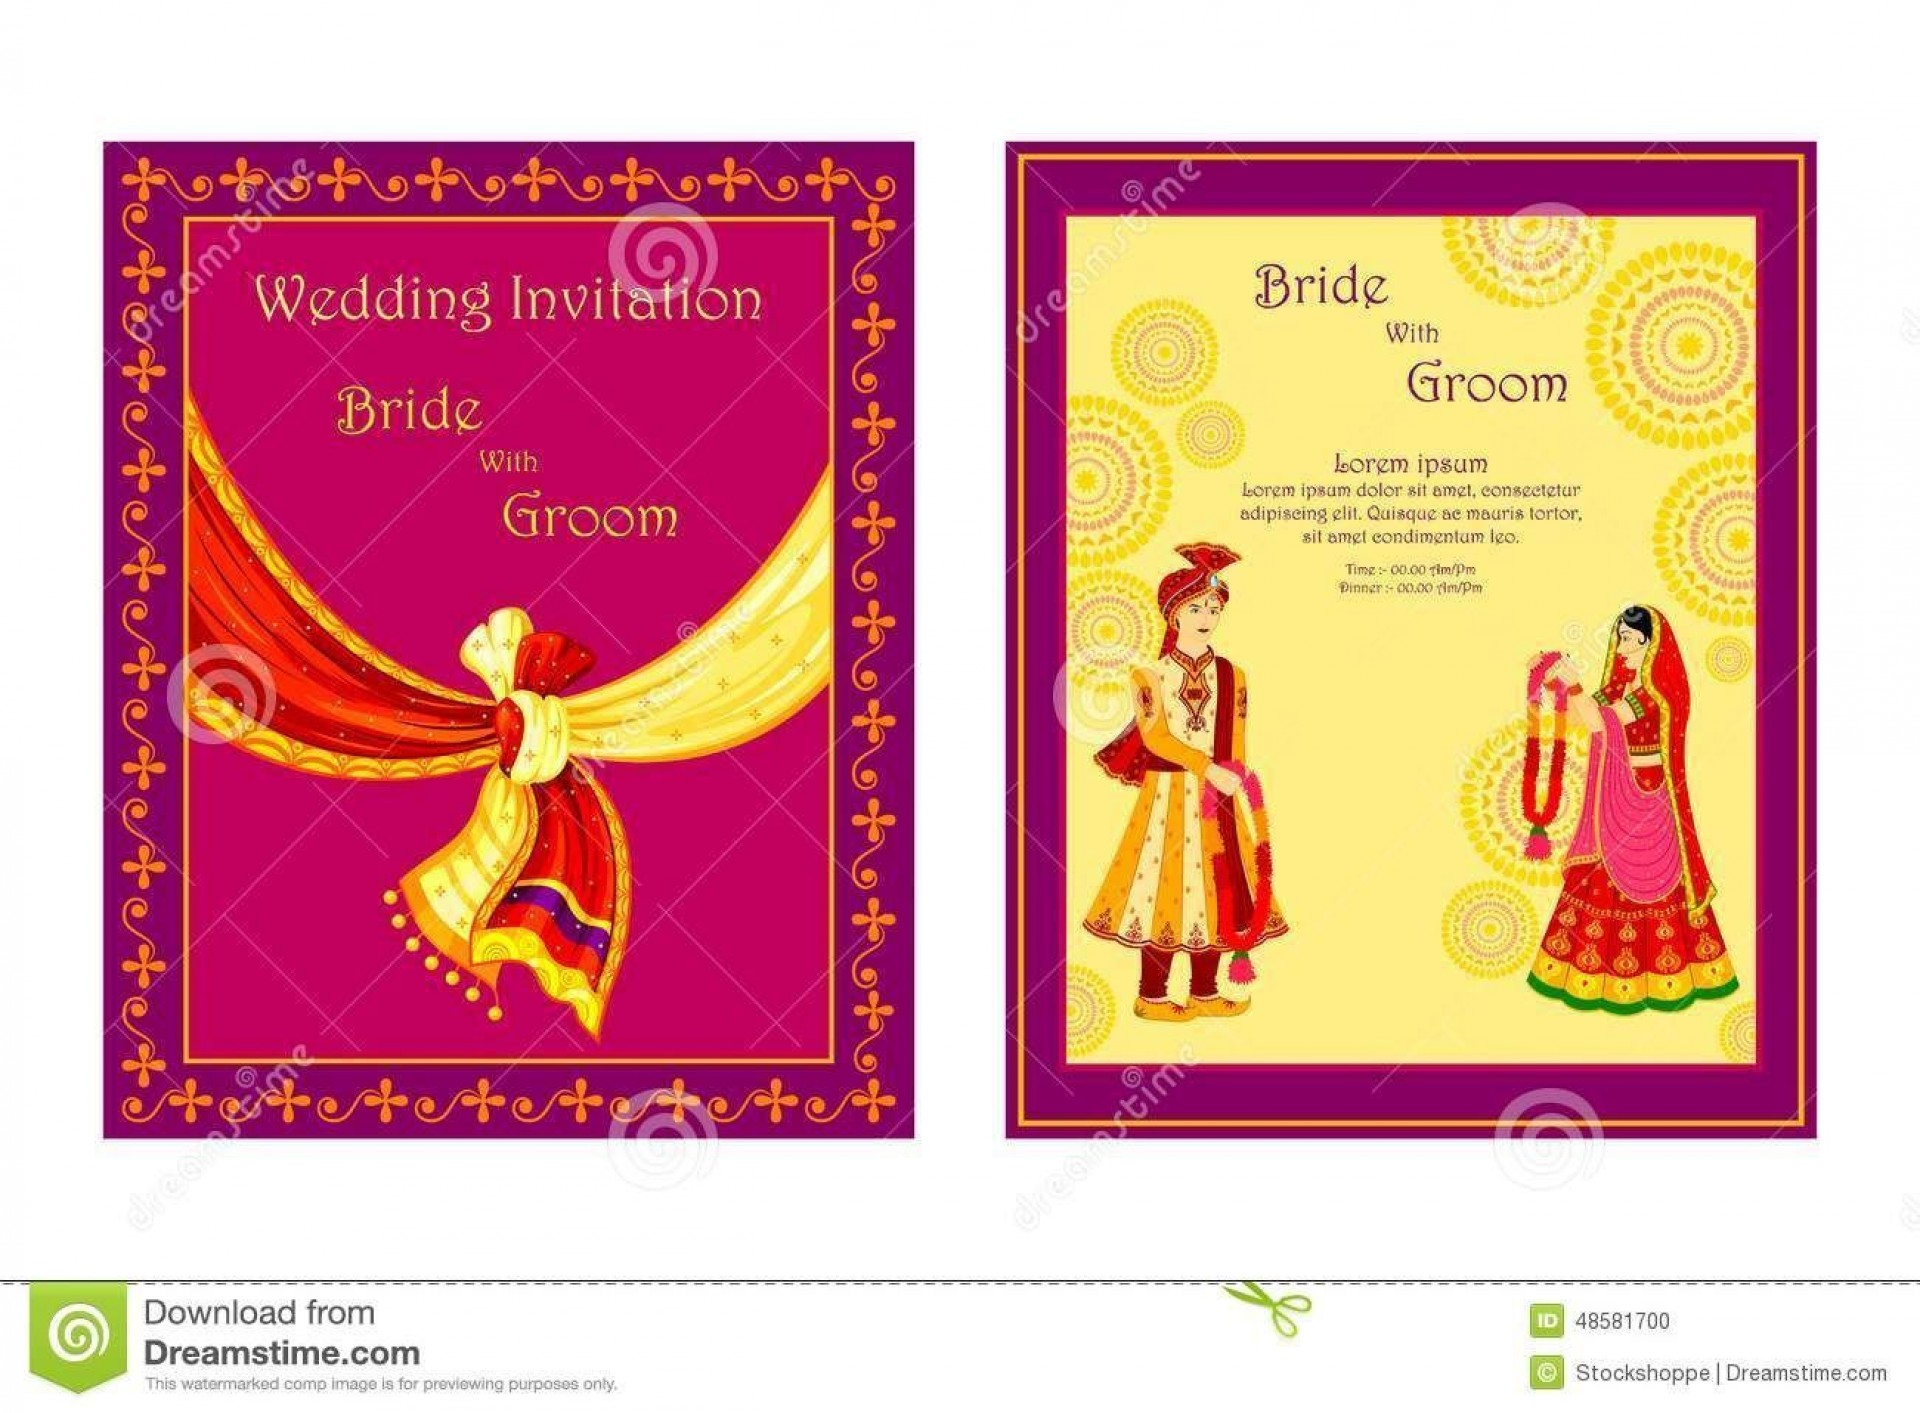 006 Magnificent Free Download Wedding Invitation Maker Software Idea  Hindu Video Card For Pc1920